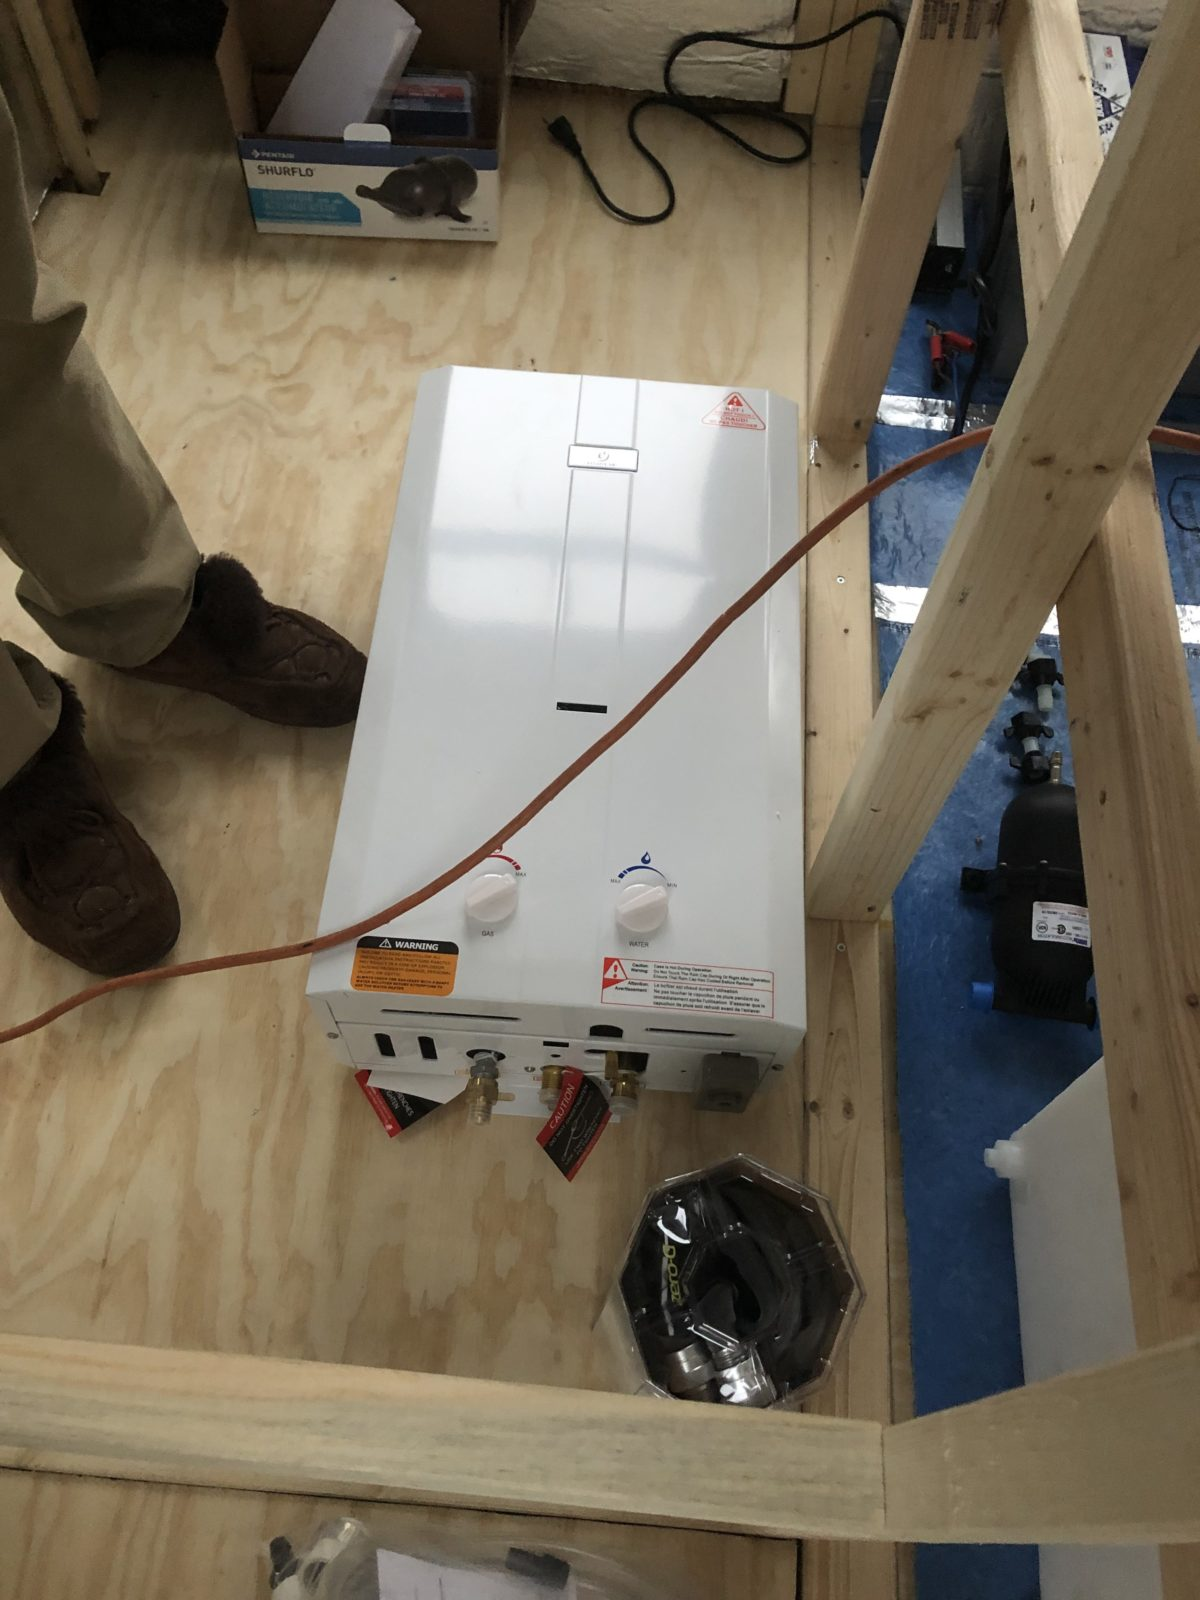 The tankless hot water heater is large and heavy